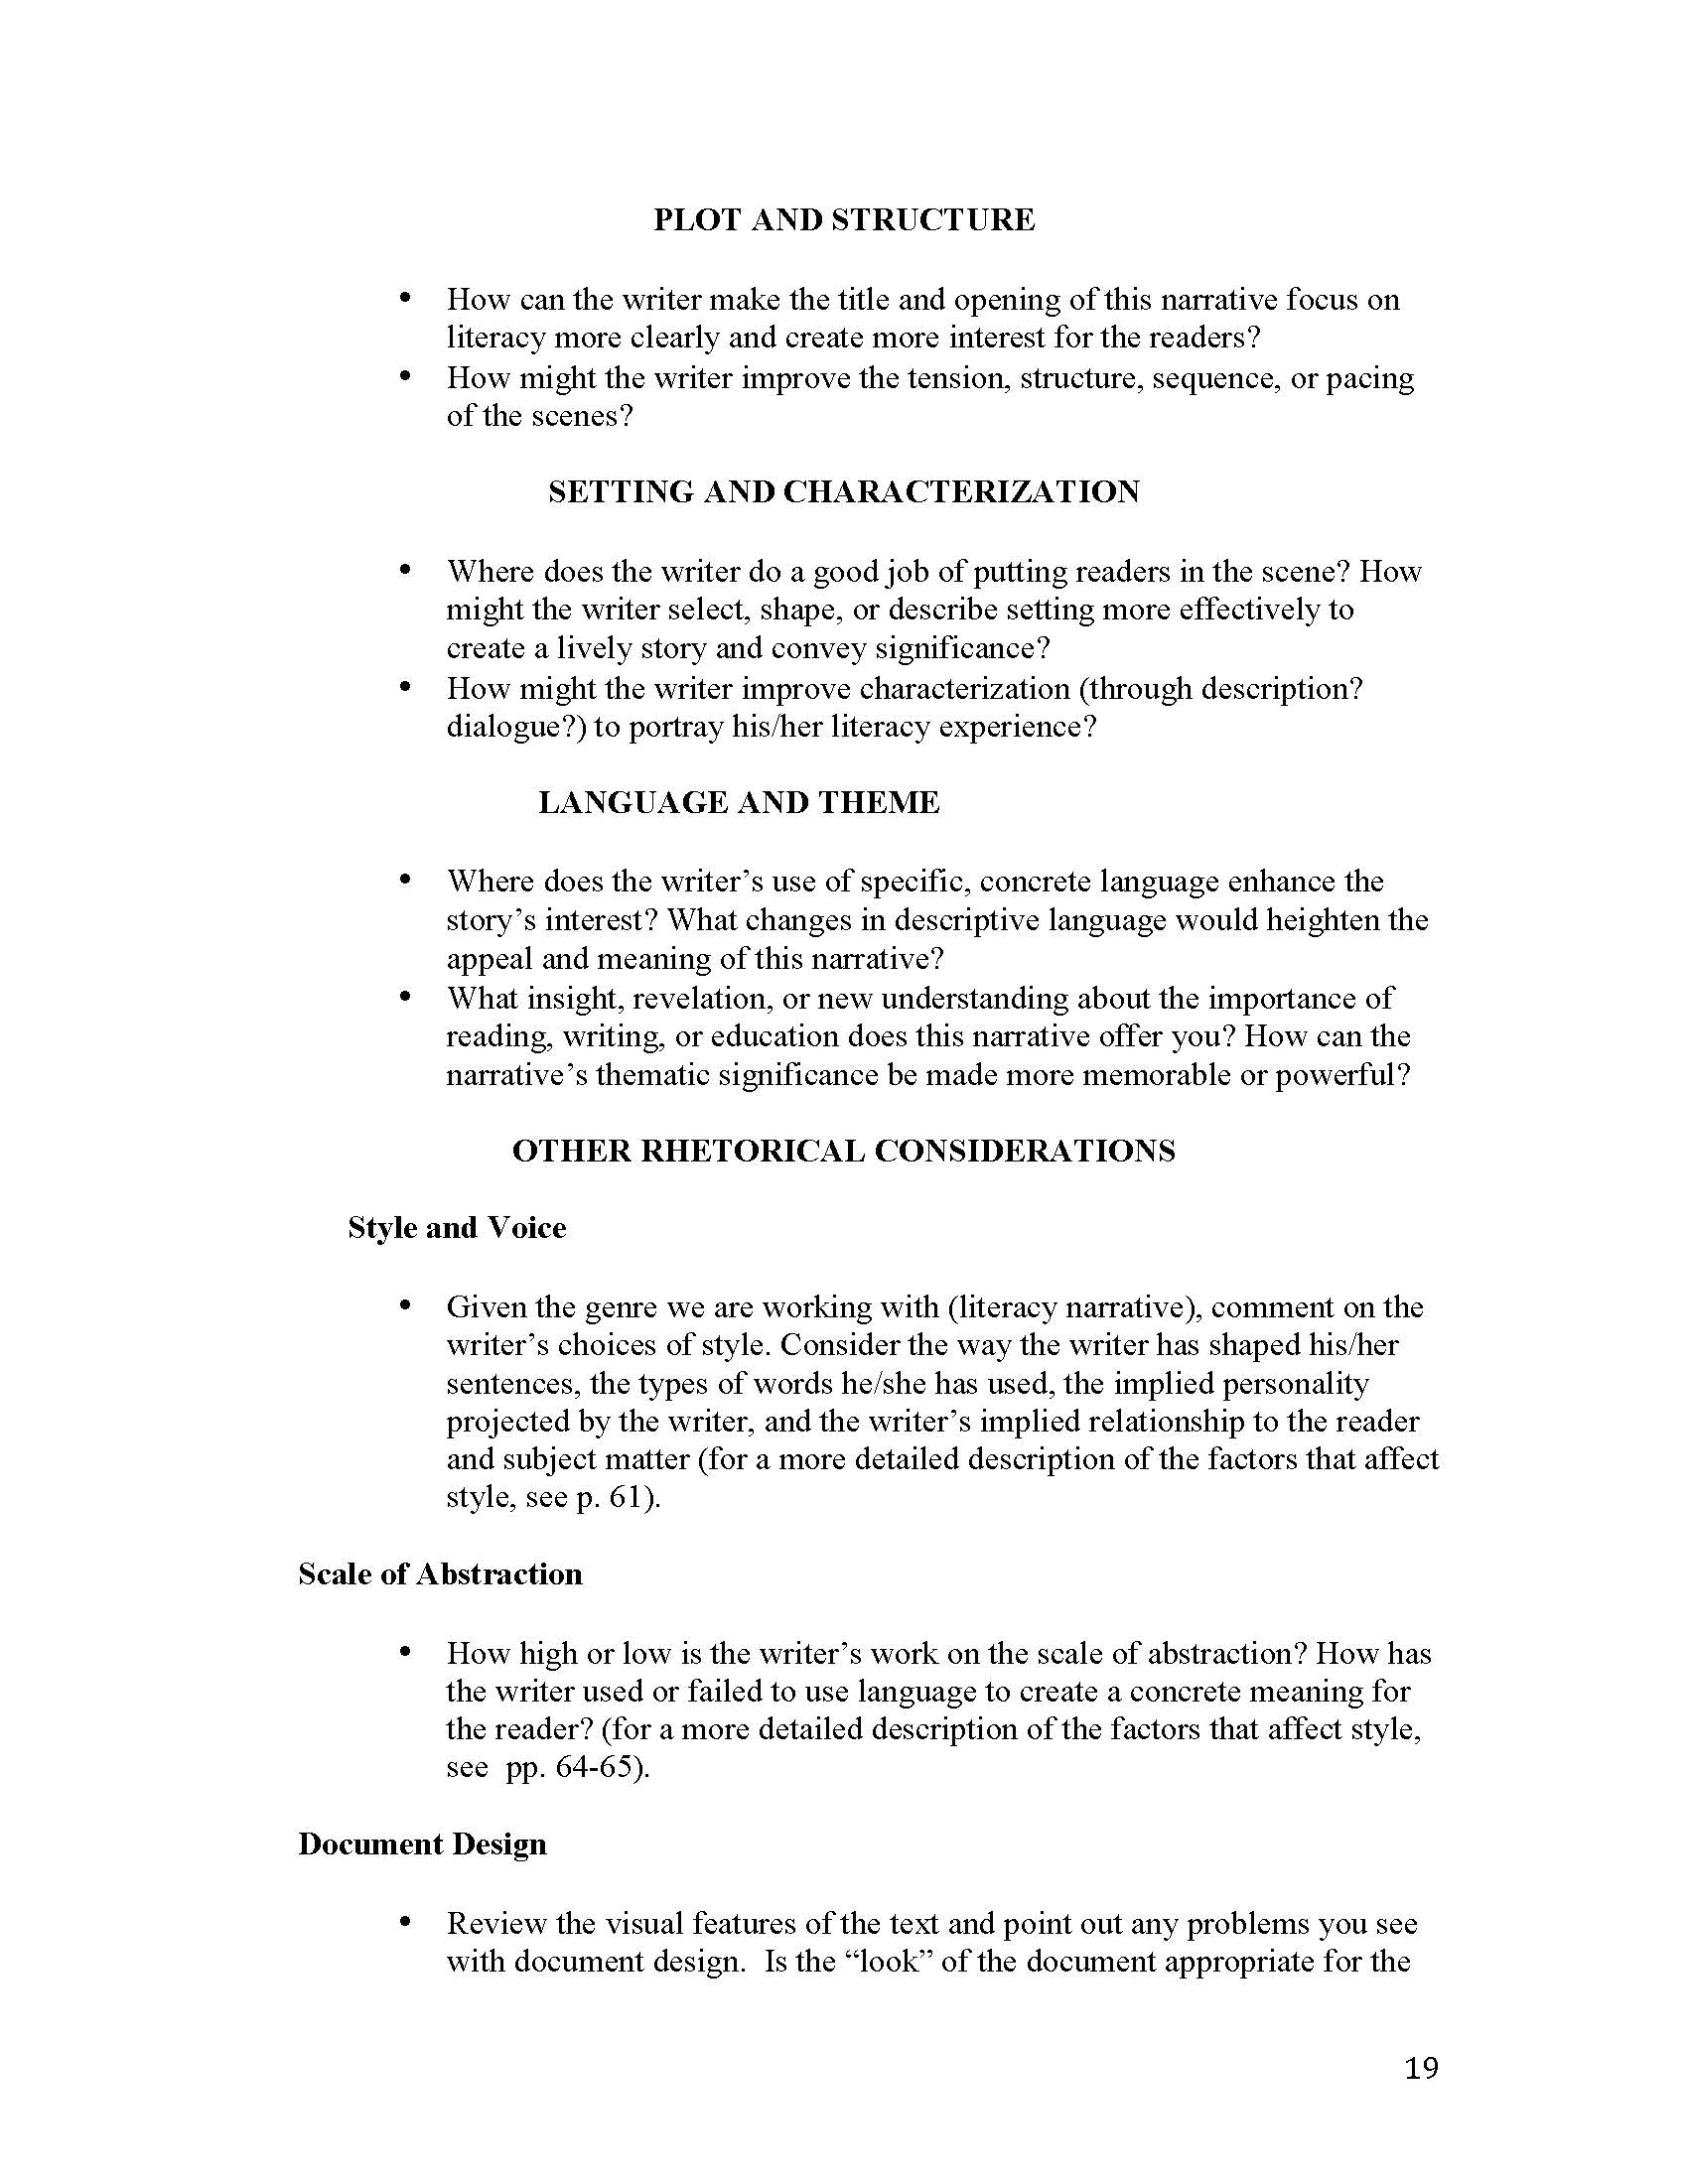 017 Unit 1 Literacy Narrative Instructor Copy Page 19 Example Of Imposing A Essay About Family Vacation Introduction Full